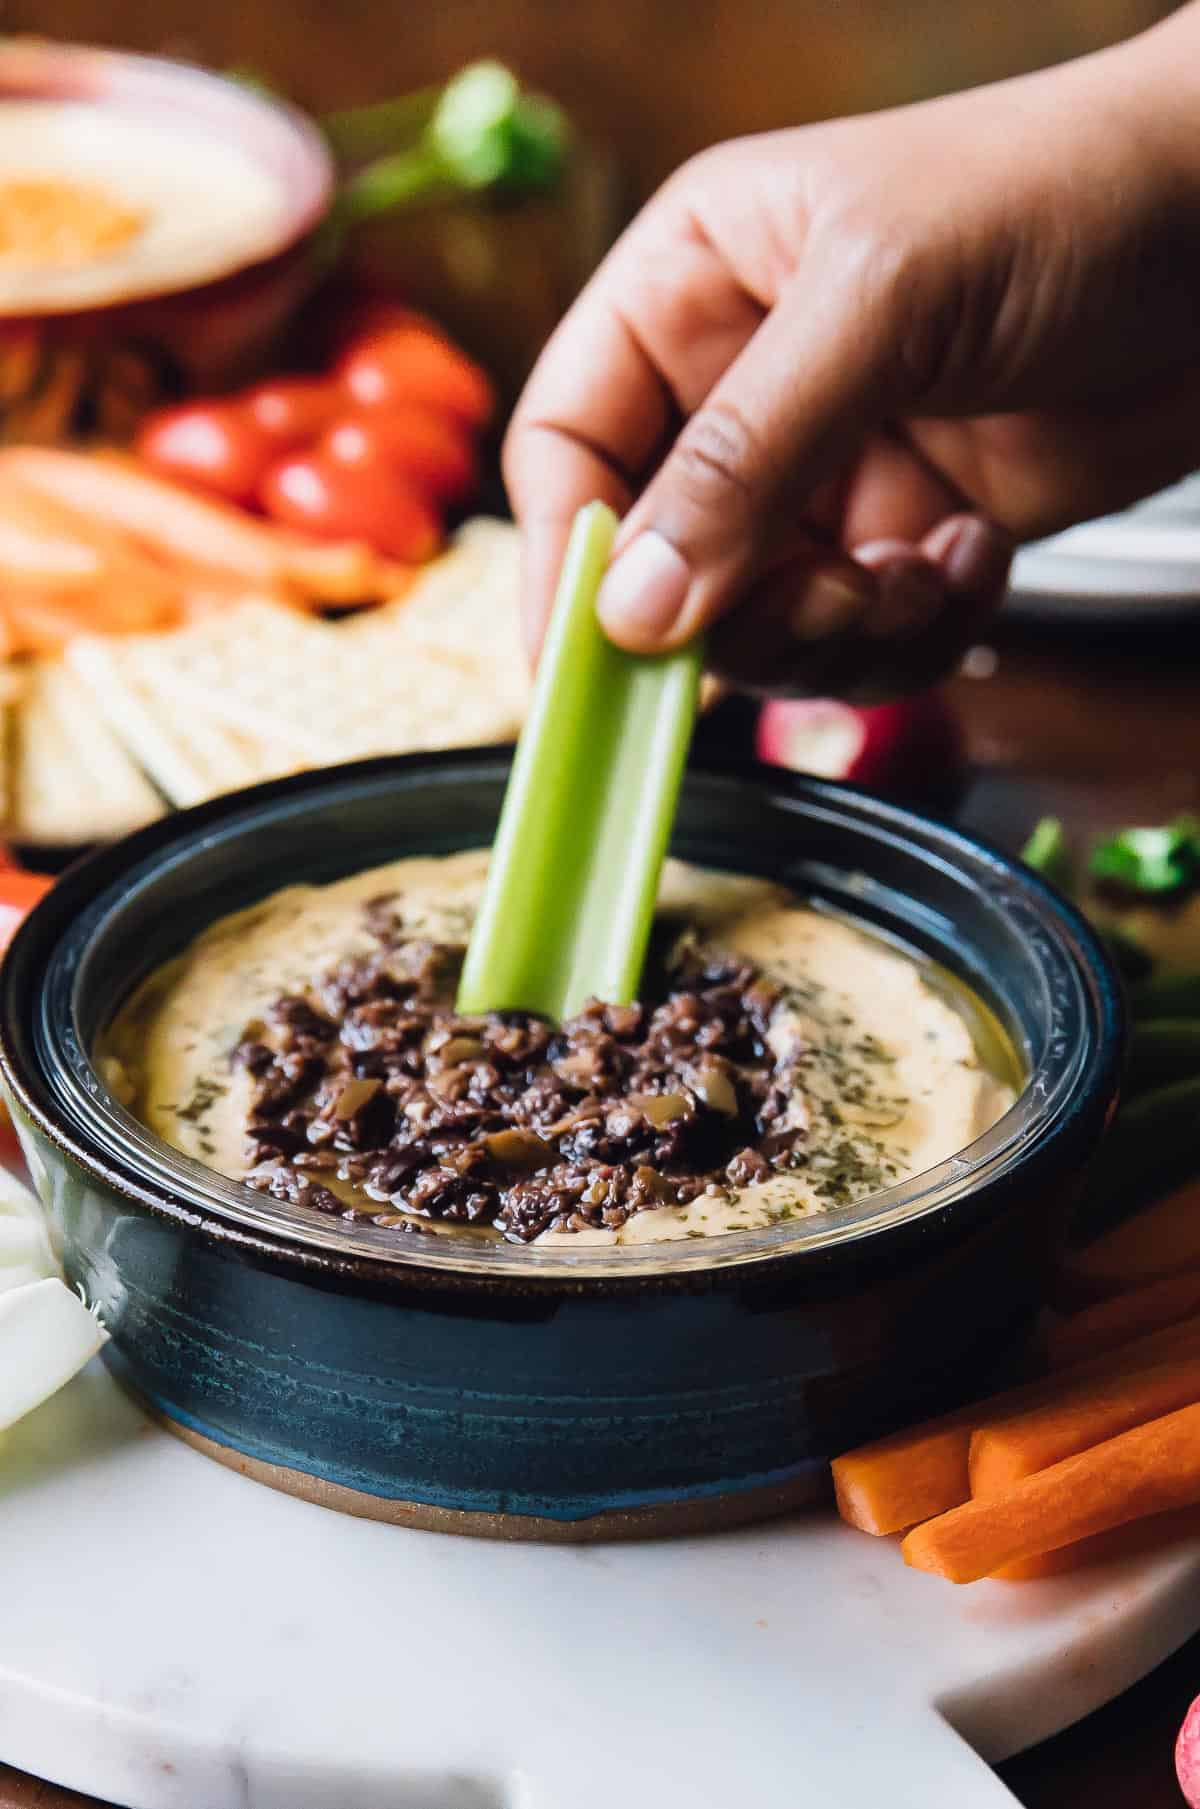 Hand dunking a celery stick into a blue bowl of dip.